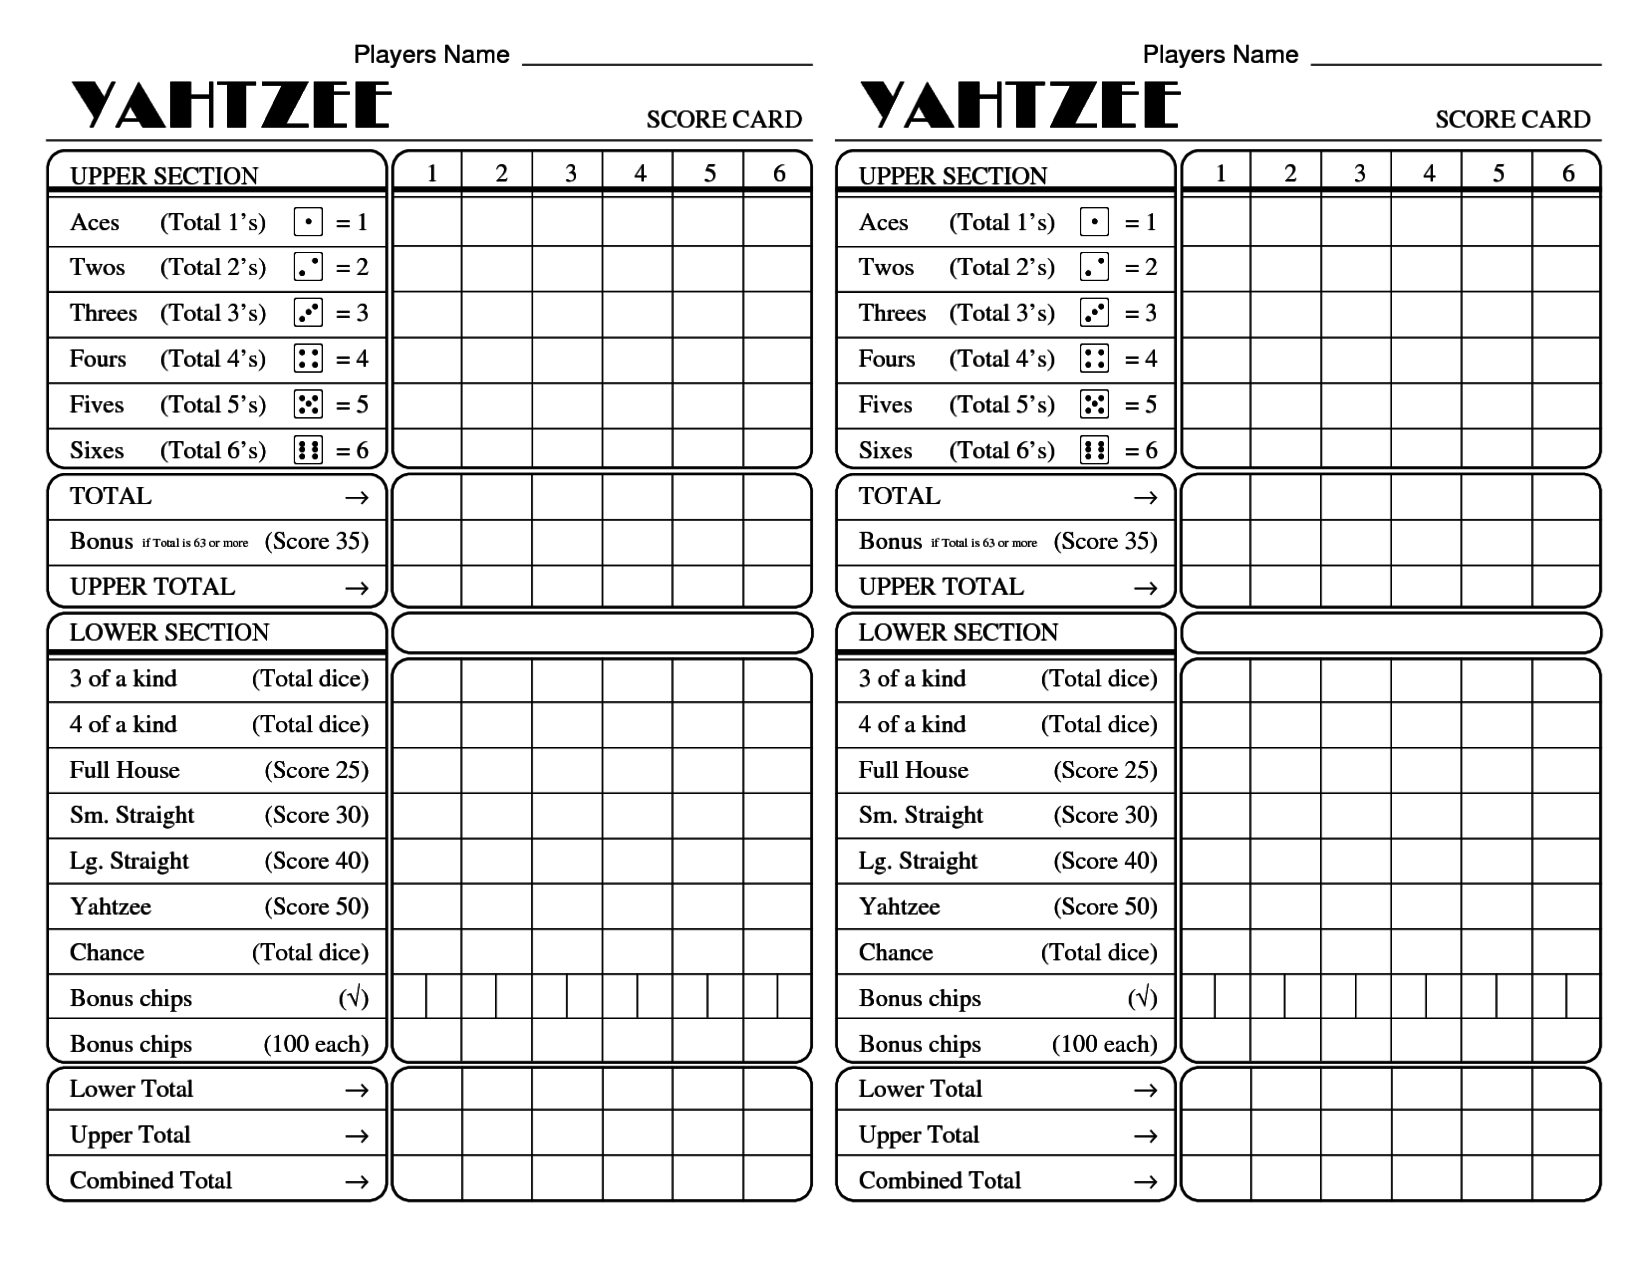 yahtzee score card archives calendar printable with holidays